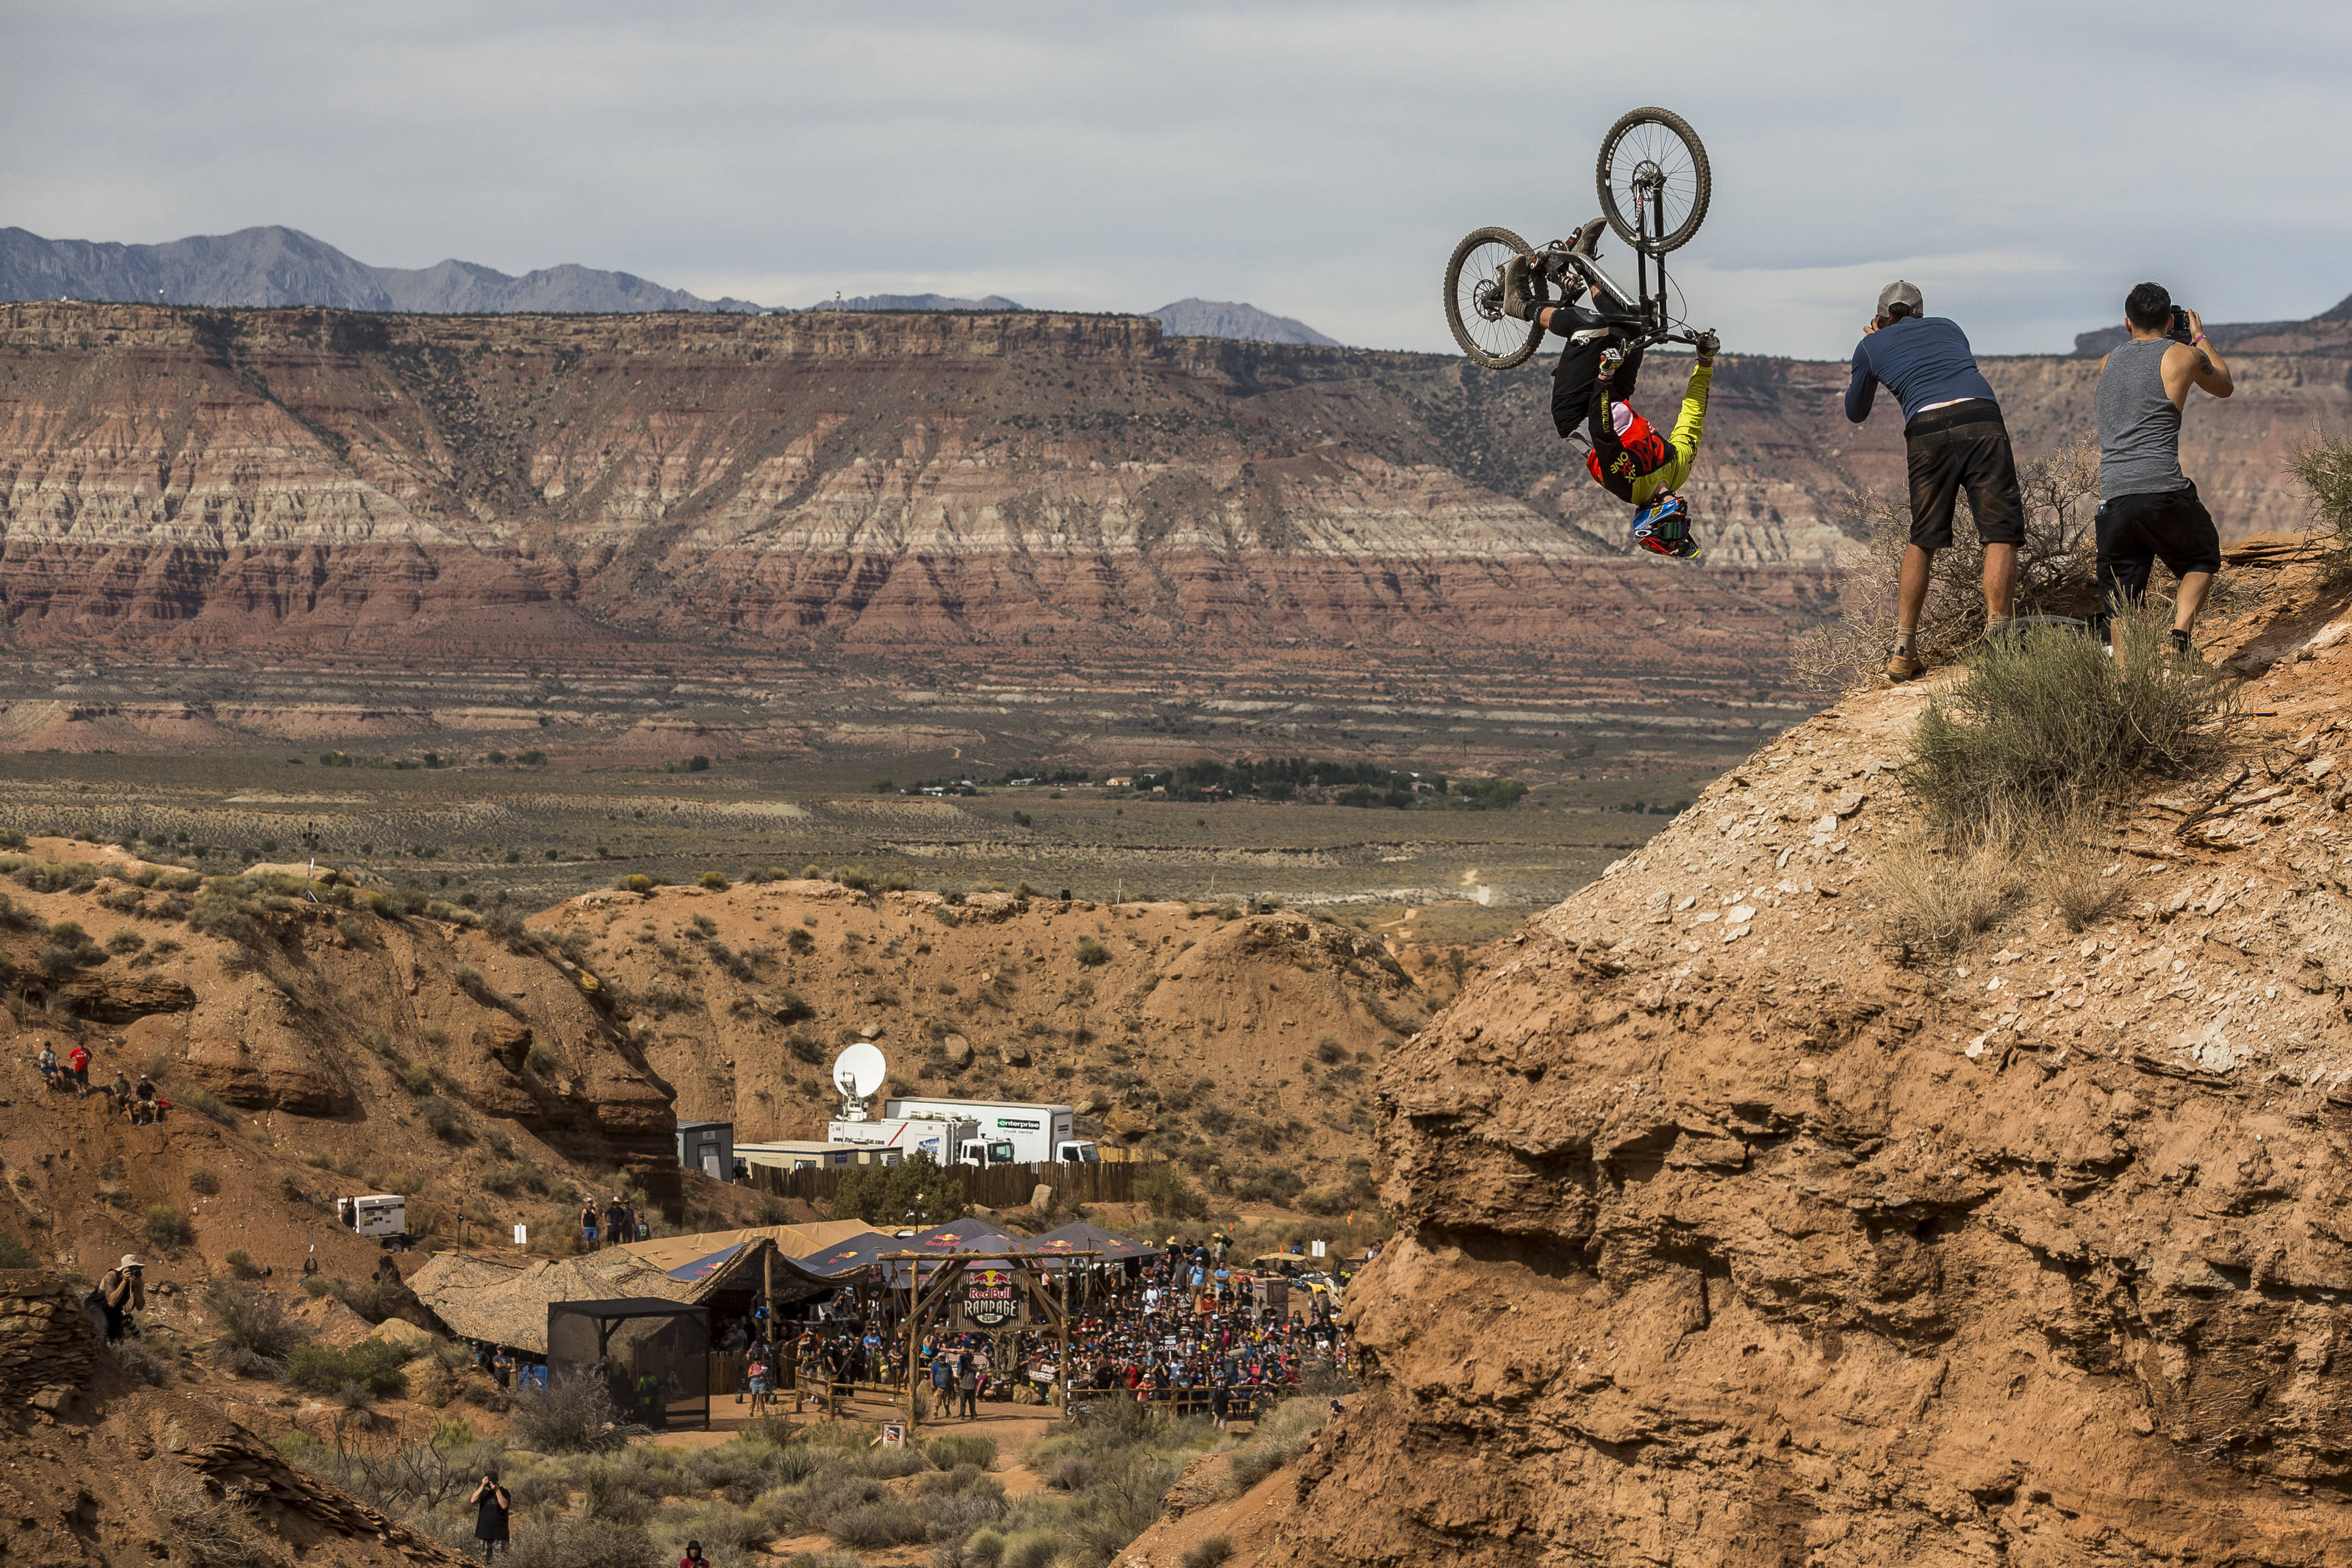 Kyle competed in the first Red Bull Rampage event back in 2001, he was only 14 years old.